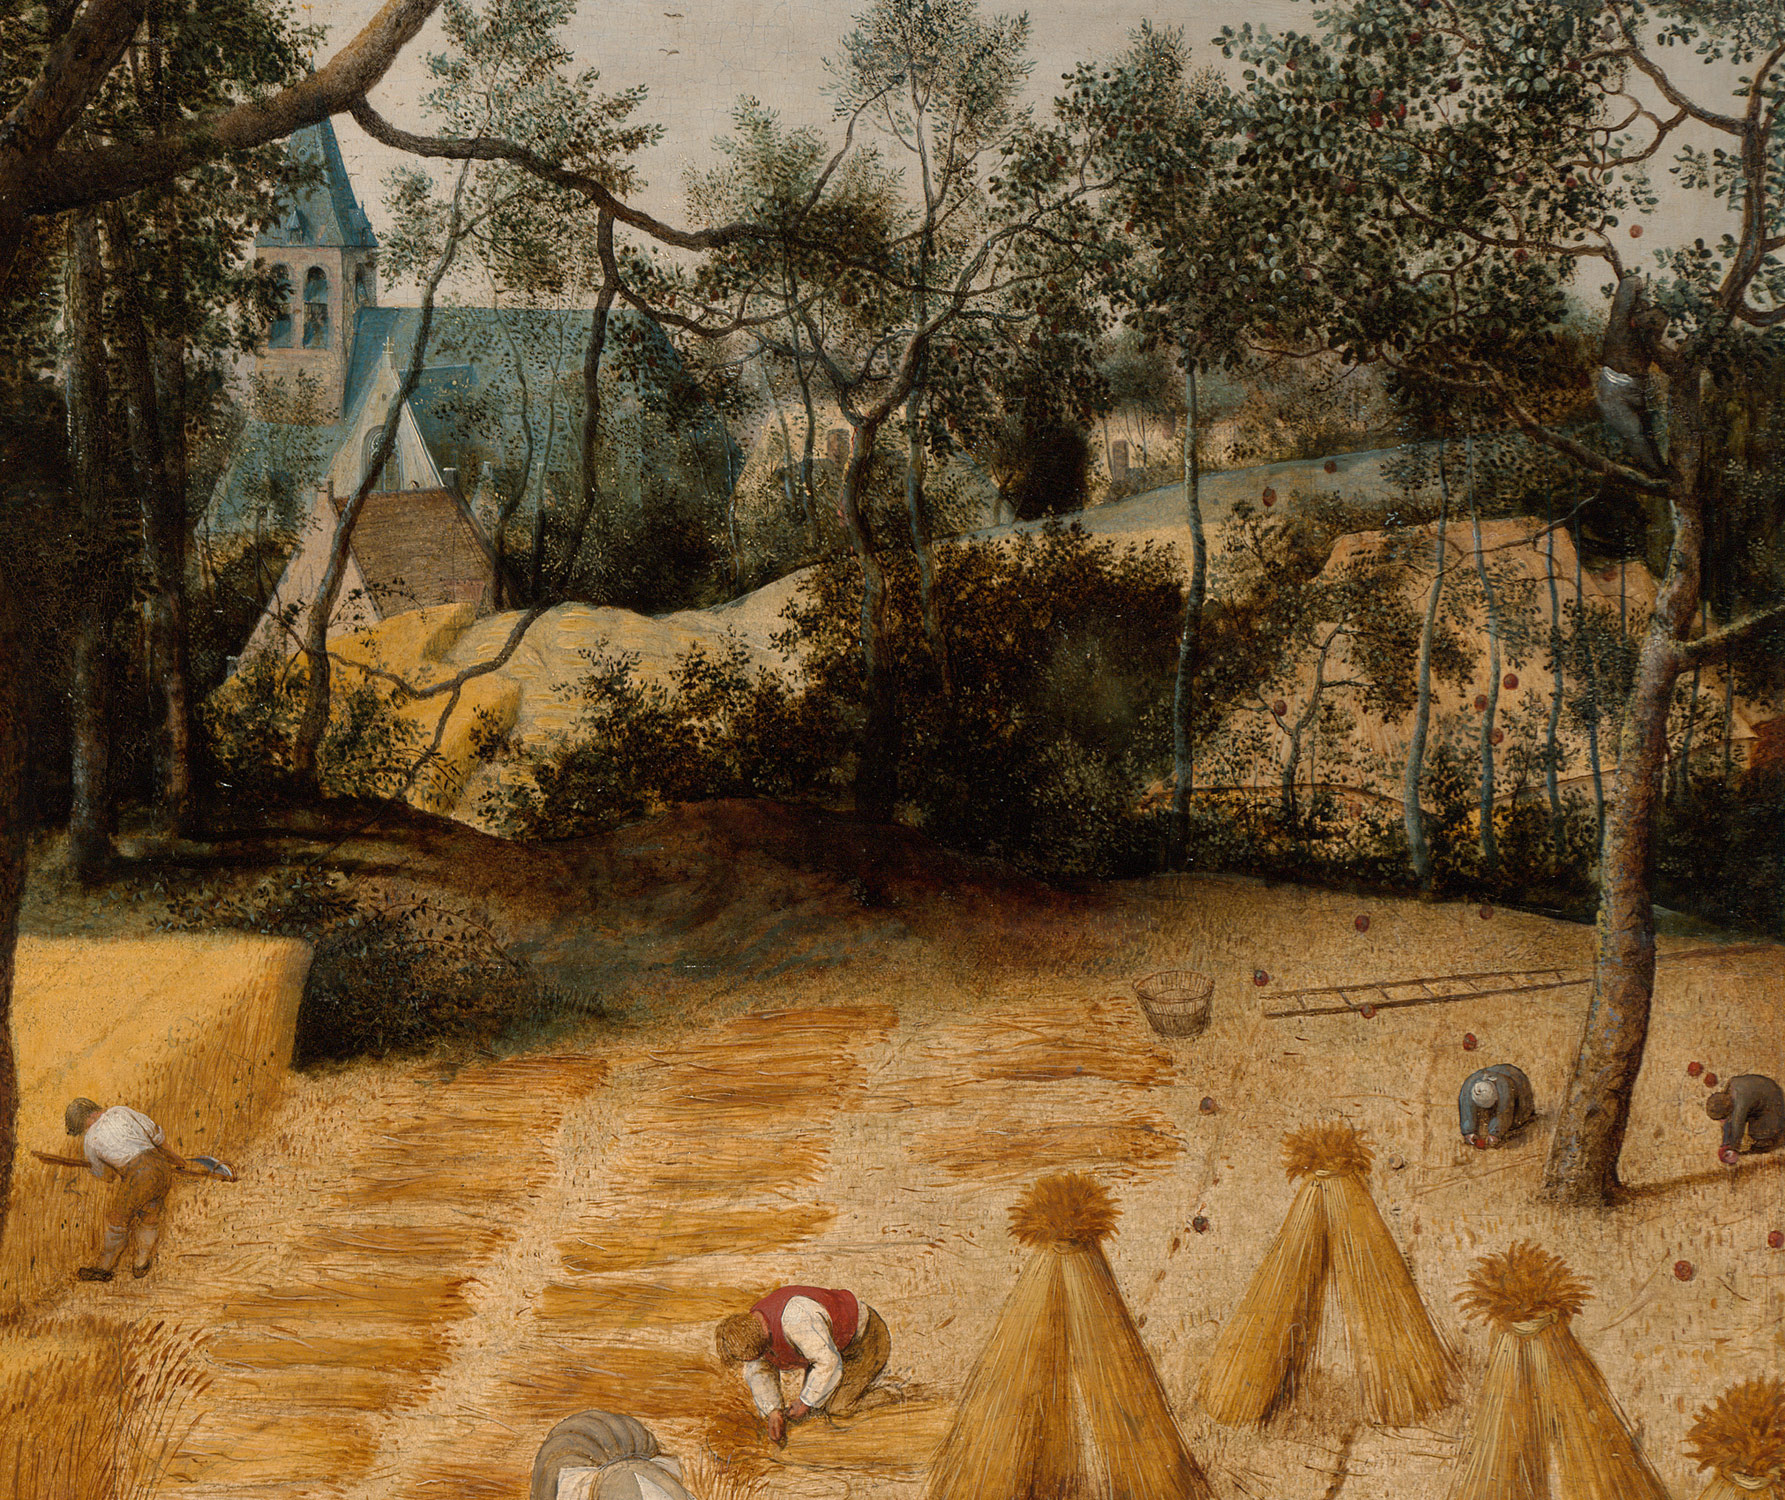 Detail from The Harvesters by Pieter Bruegel